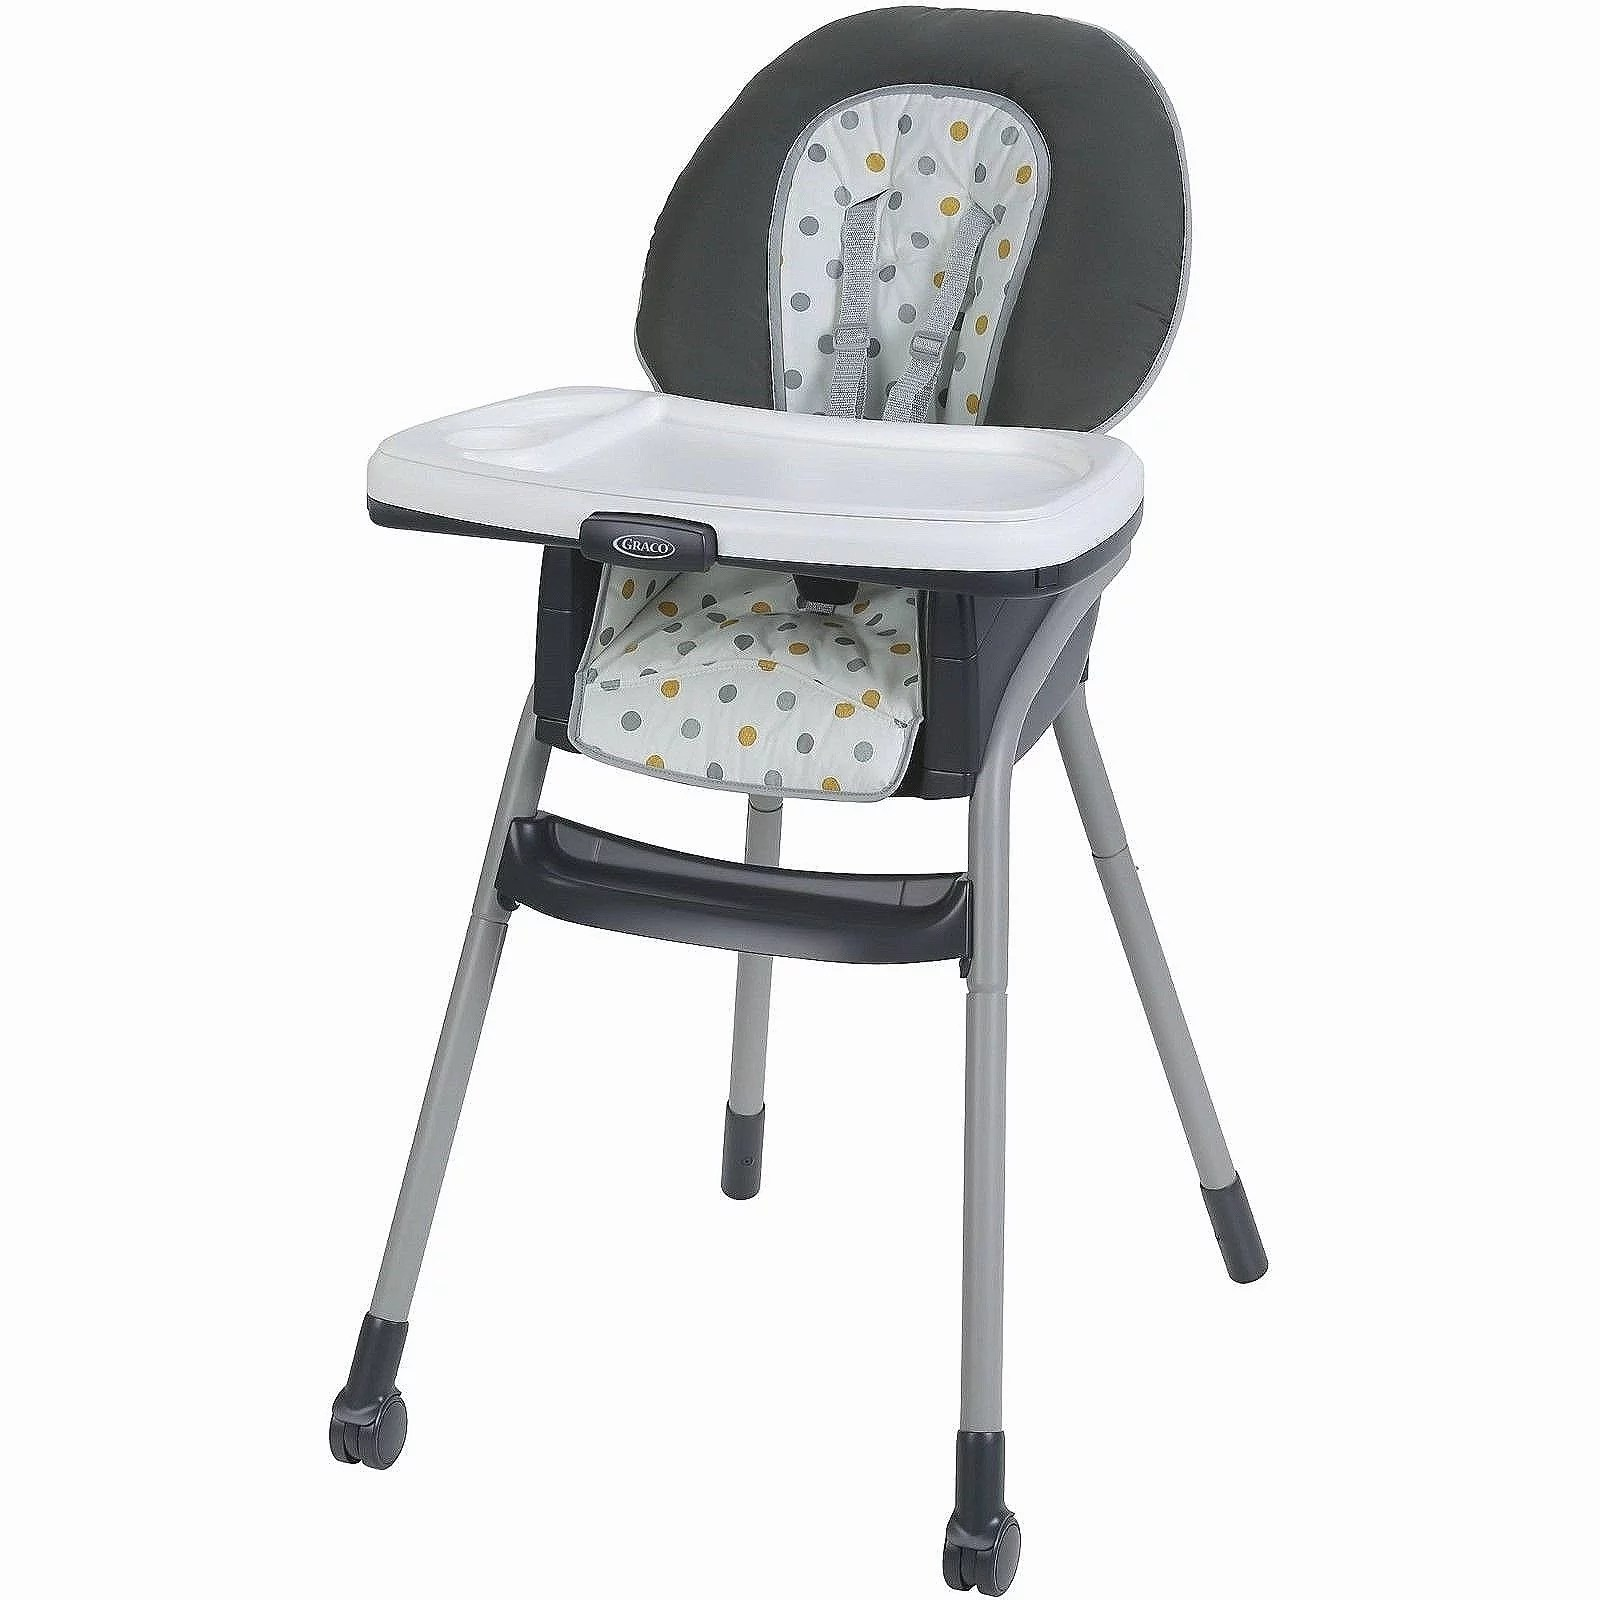 Rousing Nearly Graco Chairs Were Just Voluntarily Recalled By Brandafter Parents Reported Ir Children Falling Over While Graco Chair Recall At Walmart 2018 Popsugar Moms baby Graco High Chair